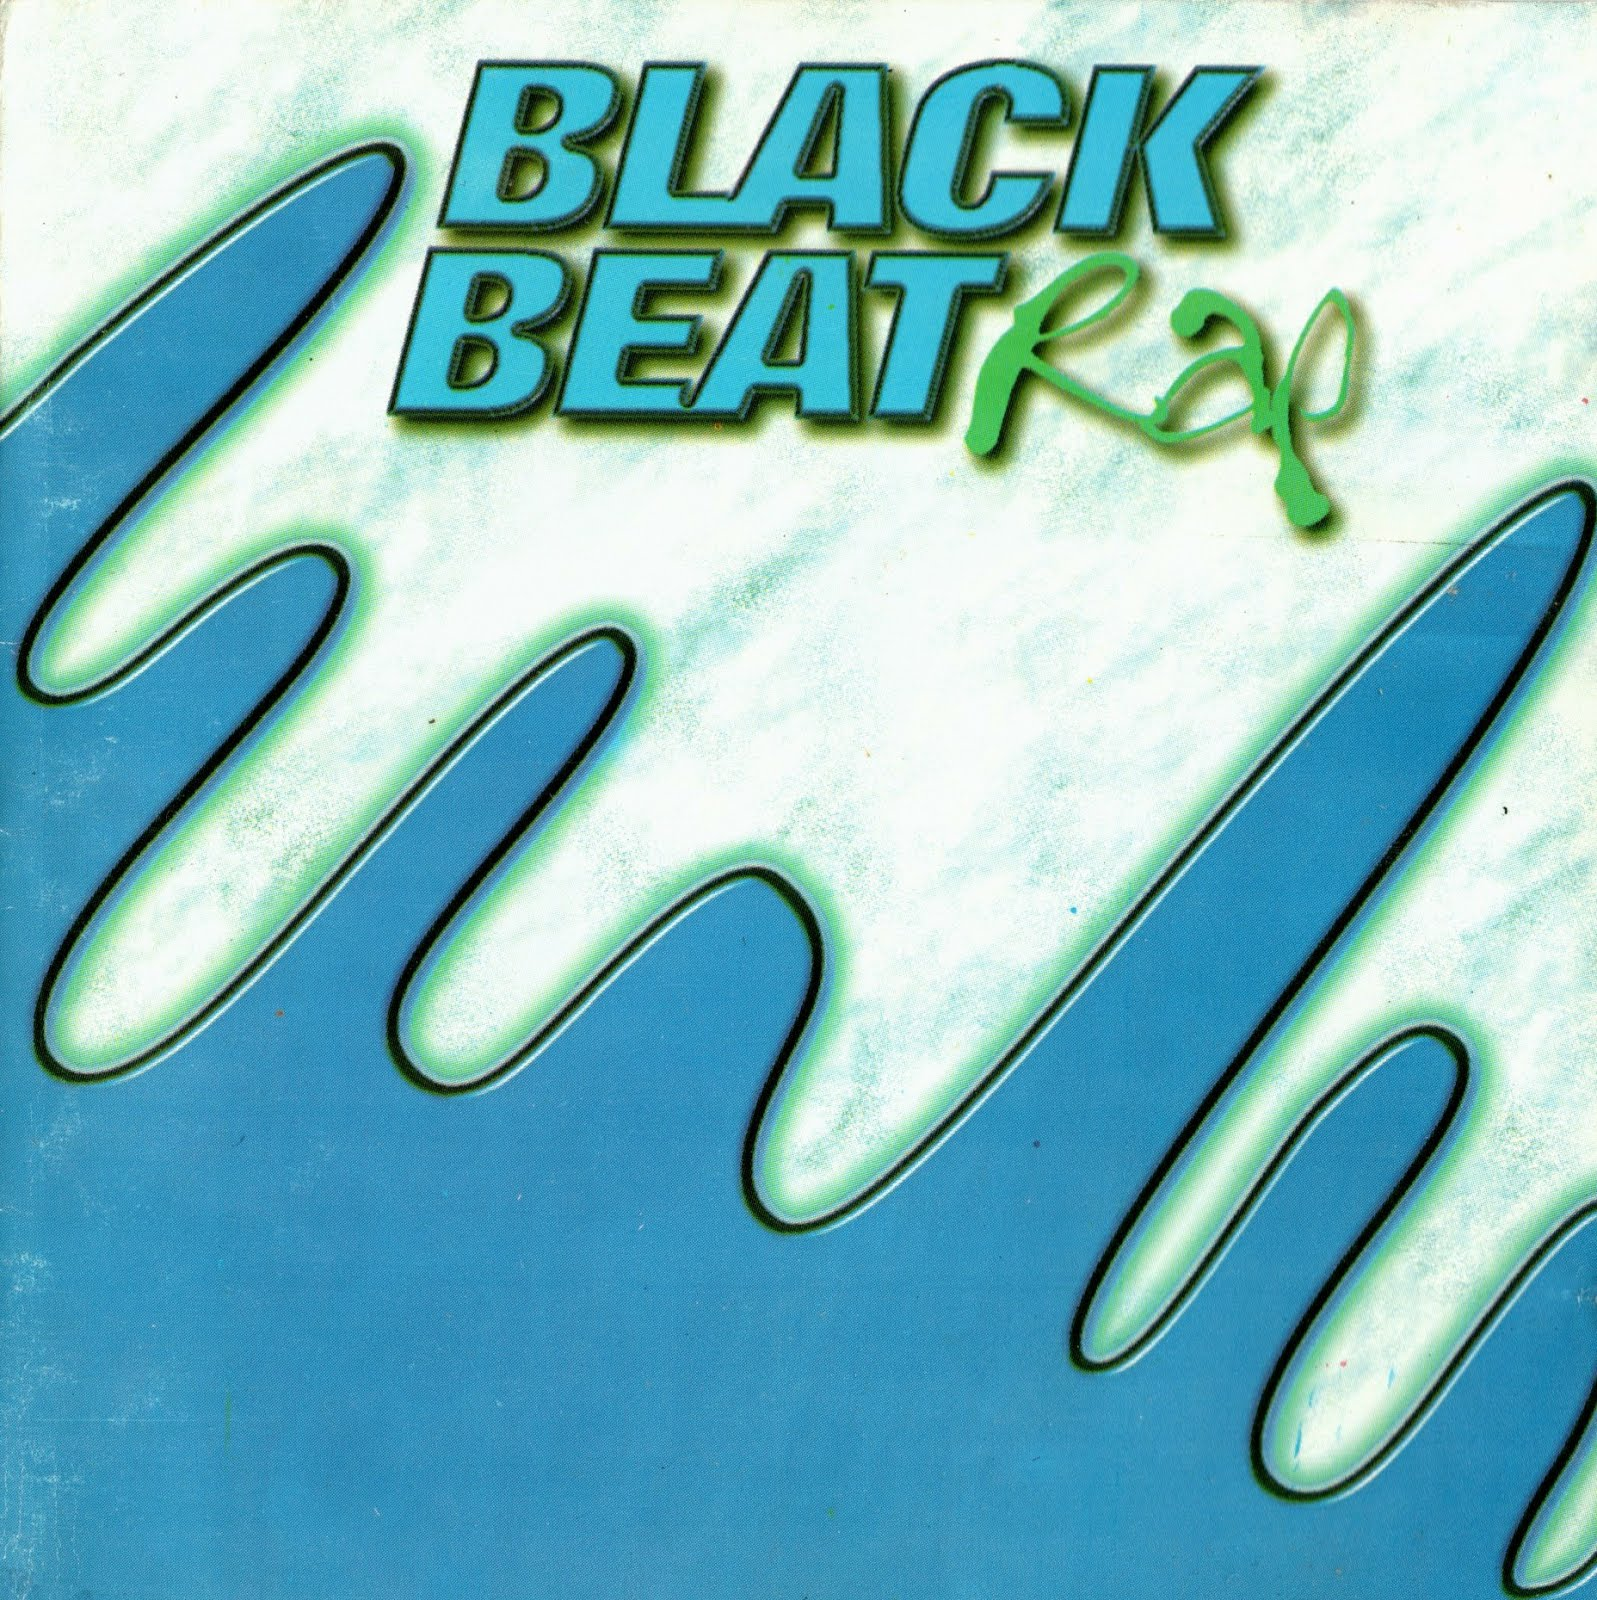 BLACK BEAT RAP